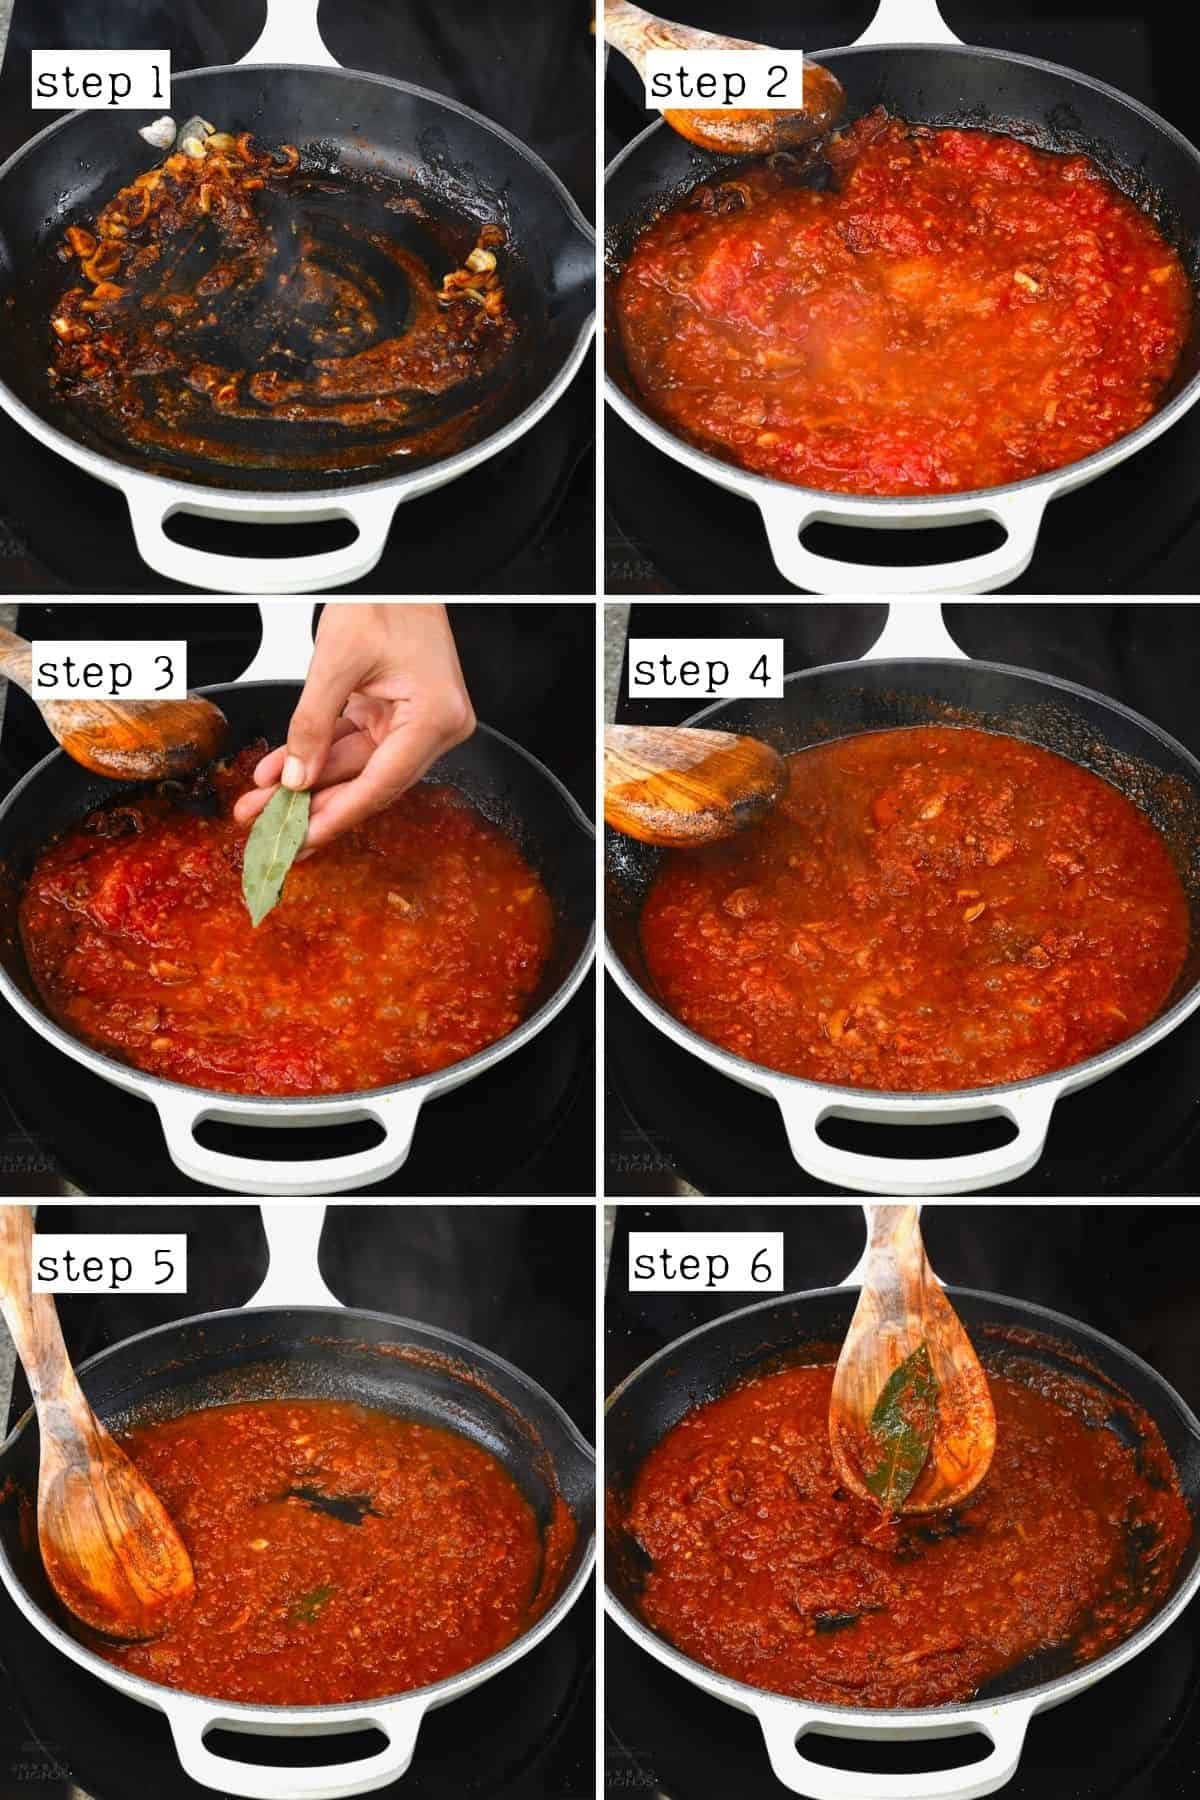 Steps for cooking tomato sauce